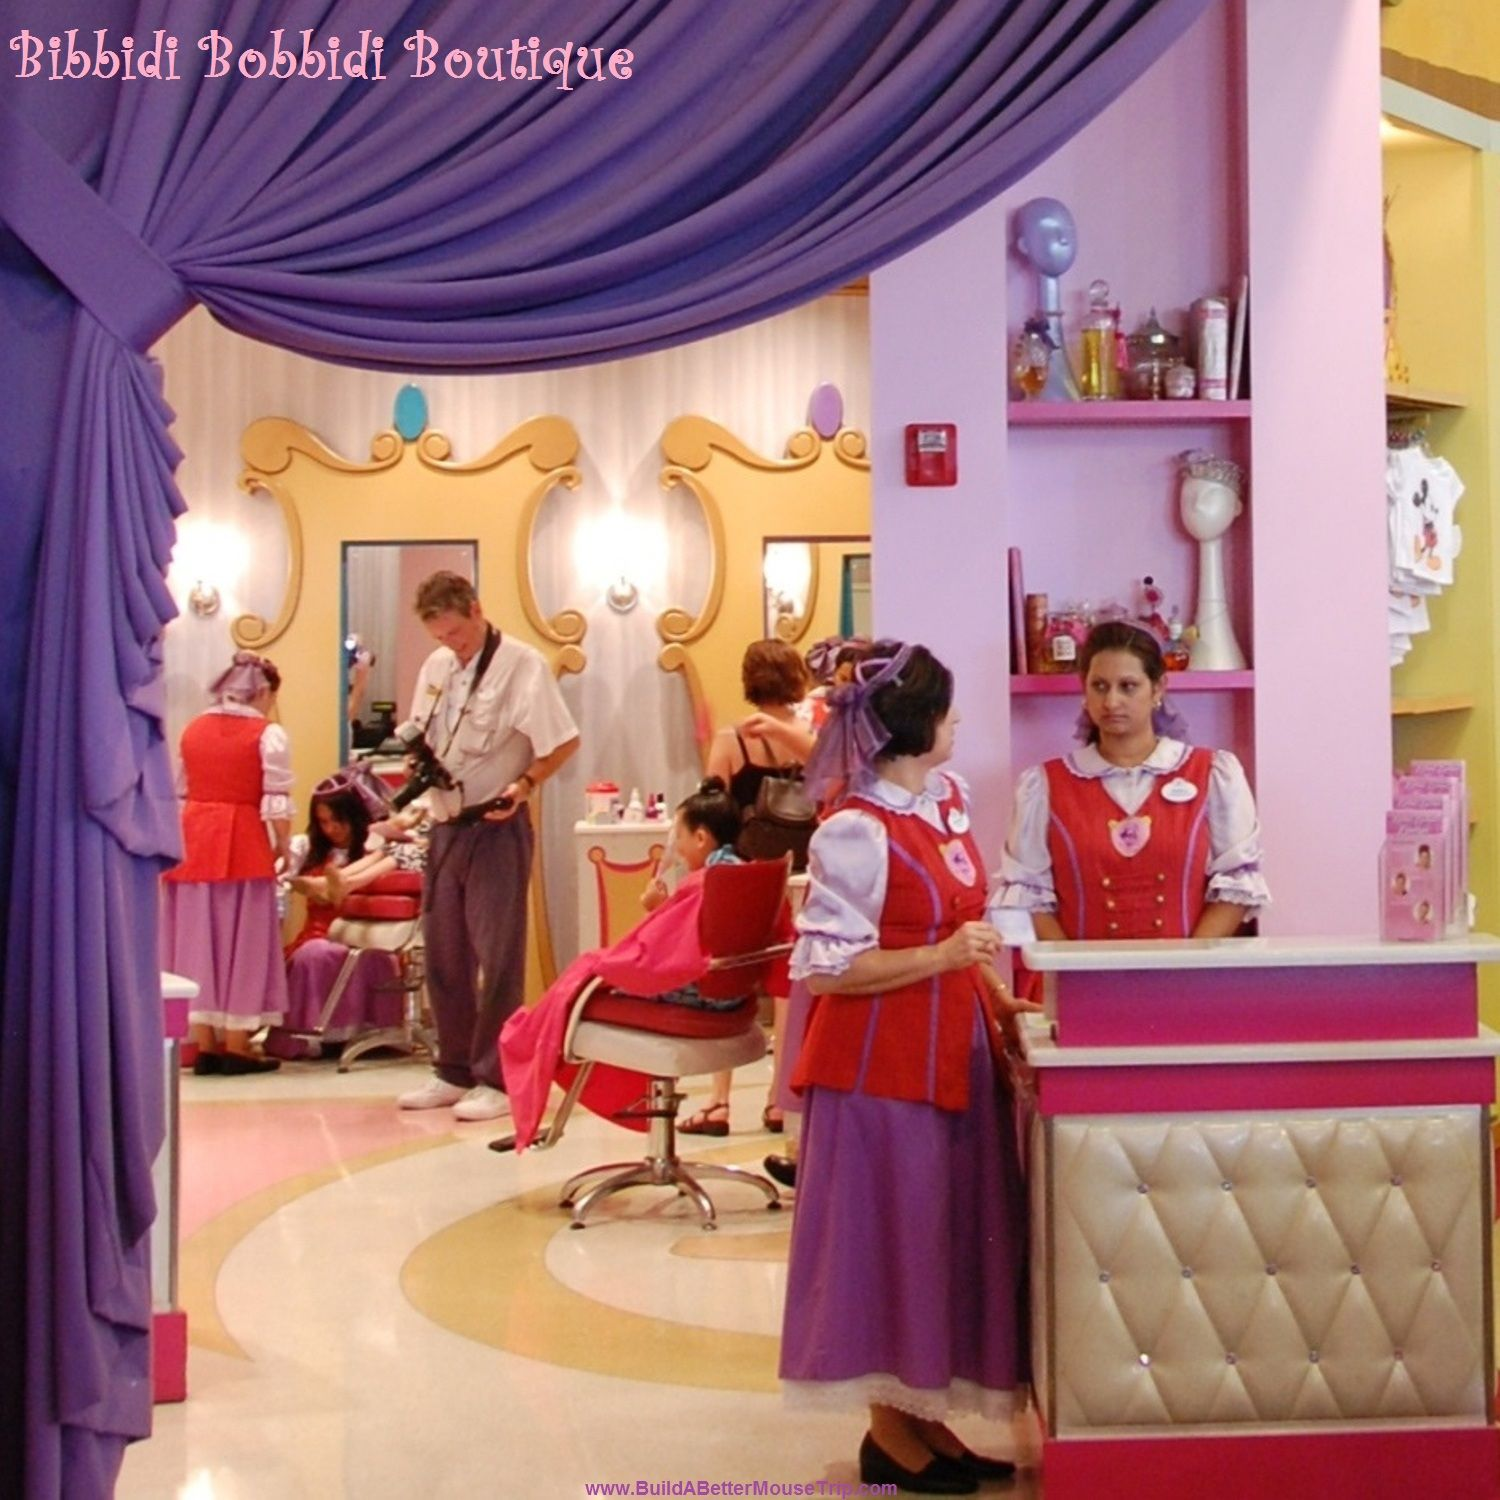 Everything You Need To Know About Bibbidi Bobbidi Boutique At